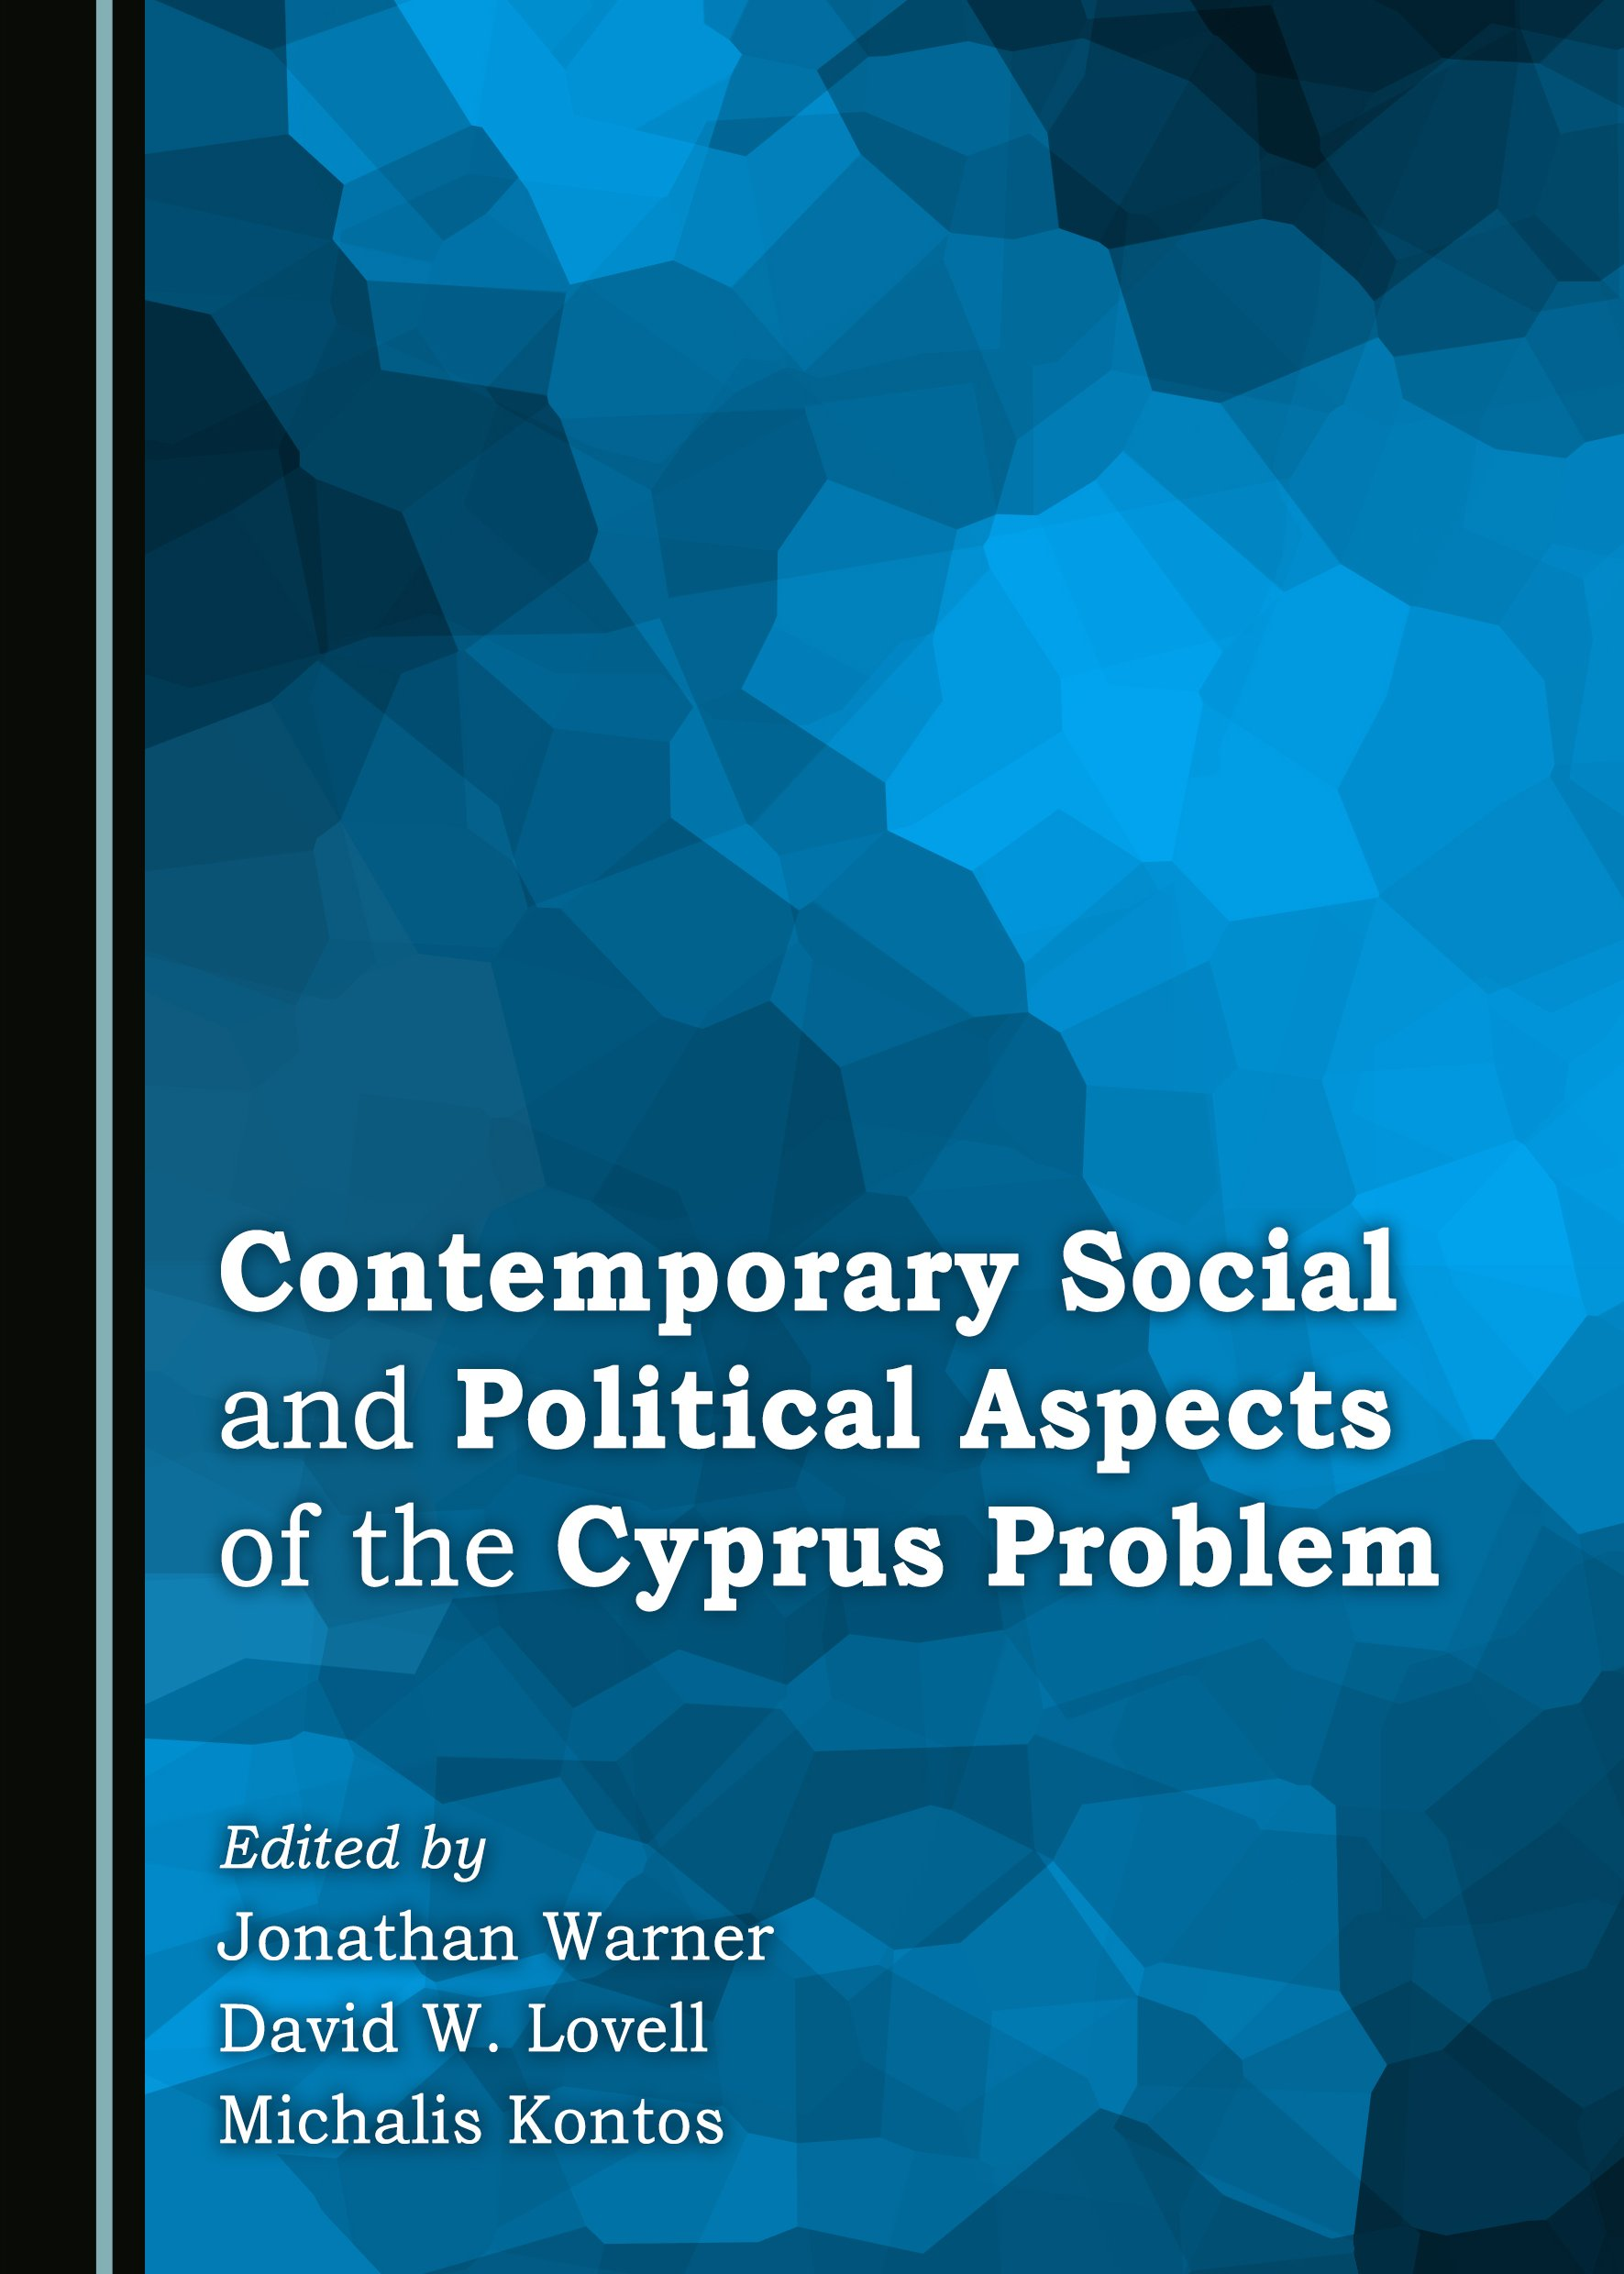 Contemporary Social and Political Aspects of the Cyprus Problem